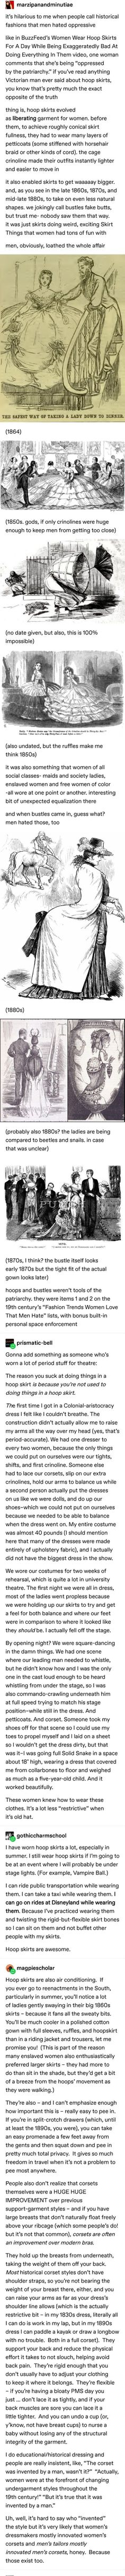 corset history This just reinforces my love of corsets and interest in hoop skirts Tumblr History, History Facts, History Memes, Women's History, Modern History, African History, Ancient History, Miami Beach, Sexy Make-up